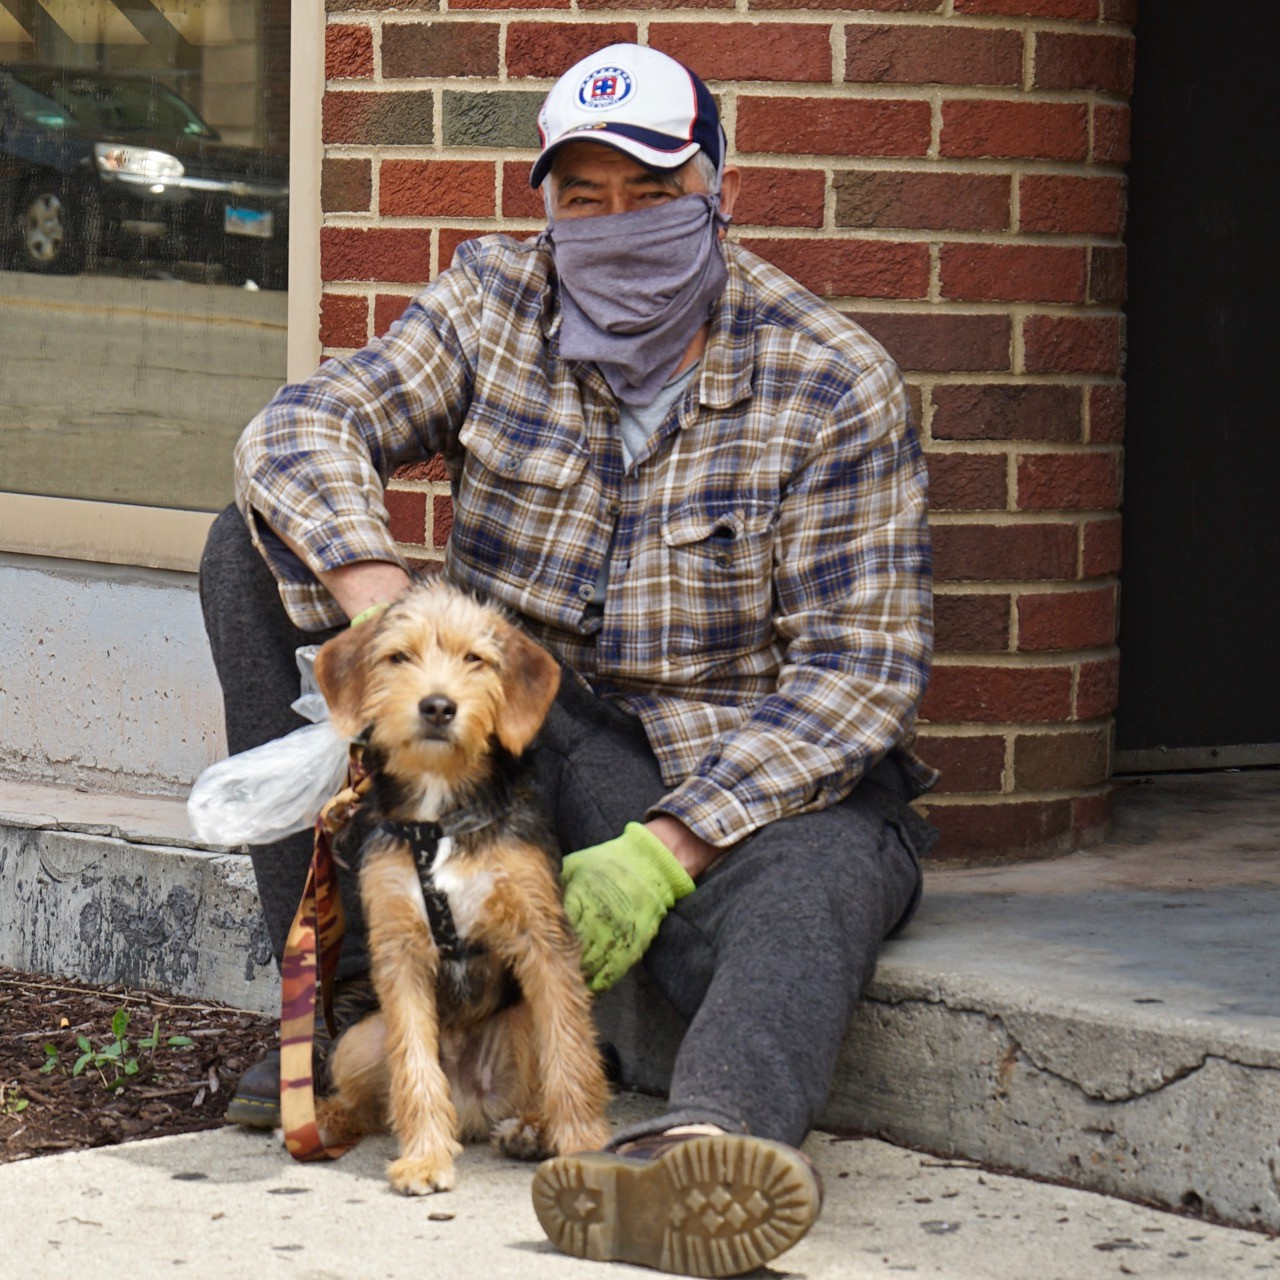 A man in work clothes sits with his dog outside a hospital in Berwyn, IL